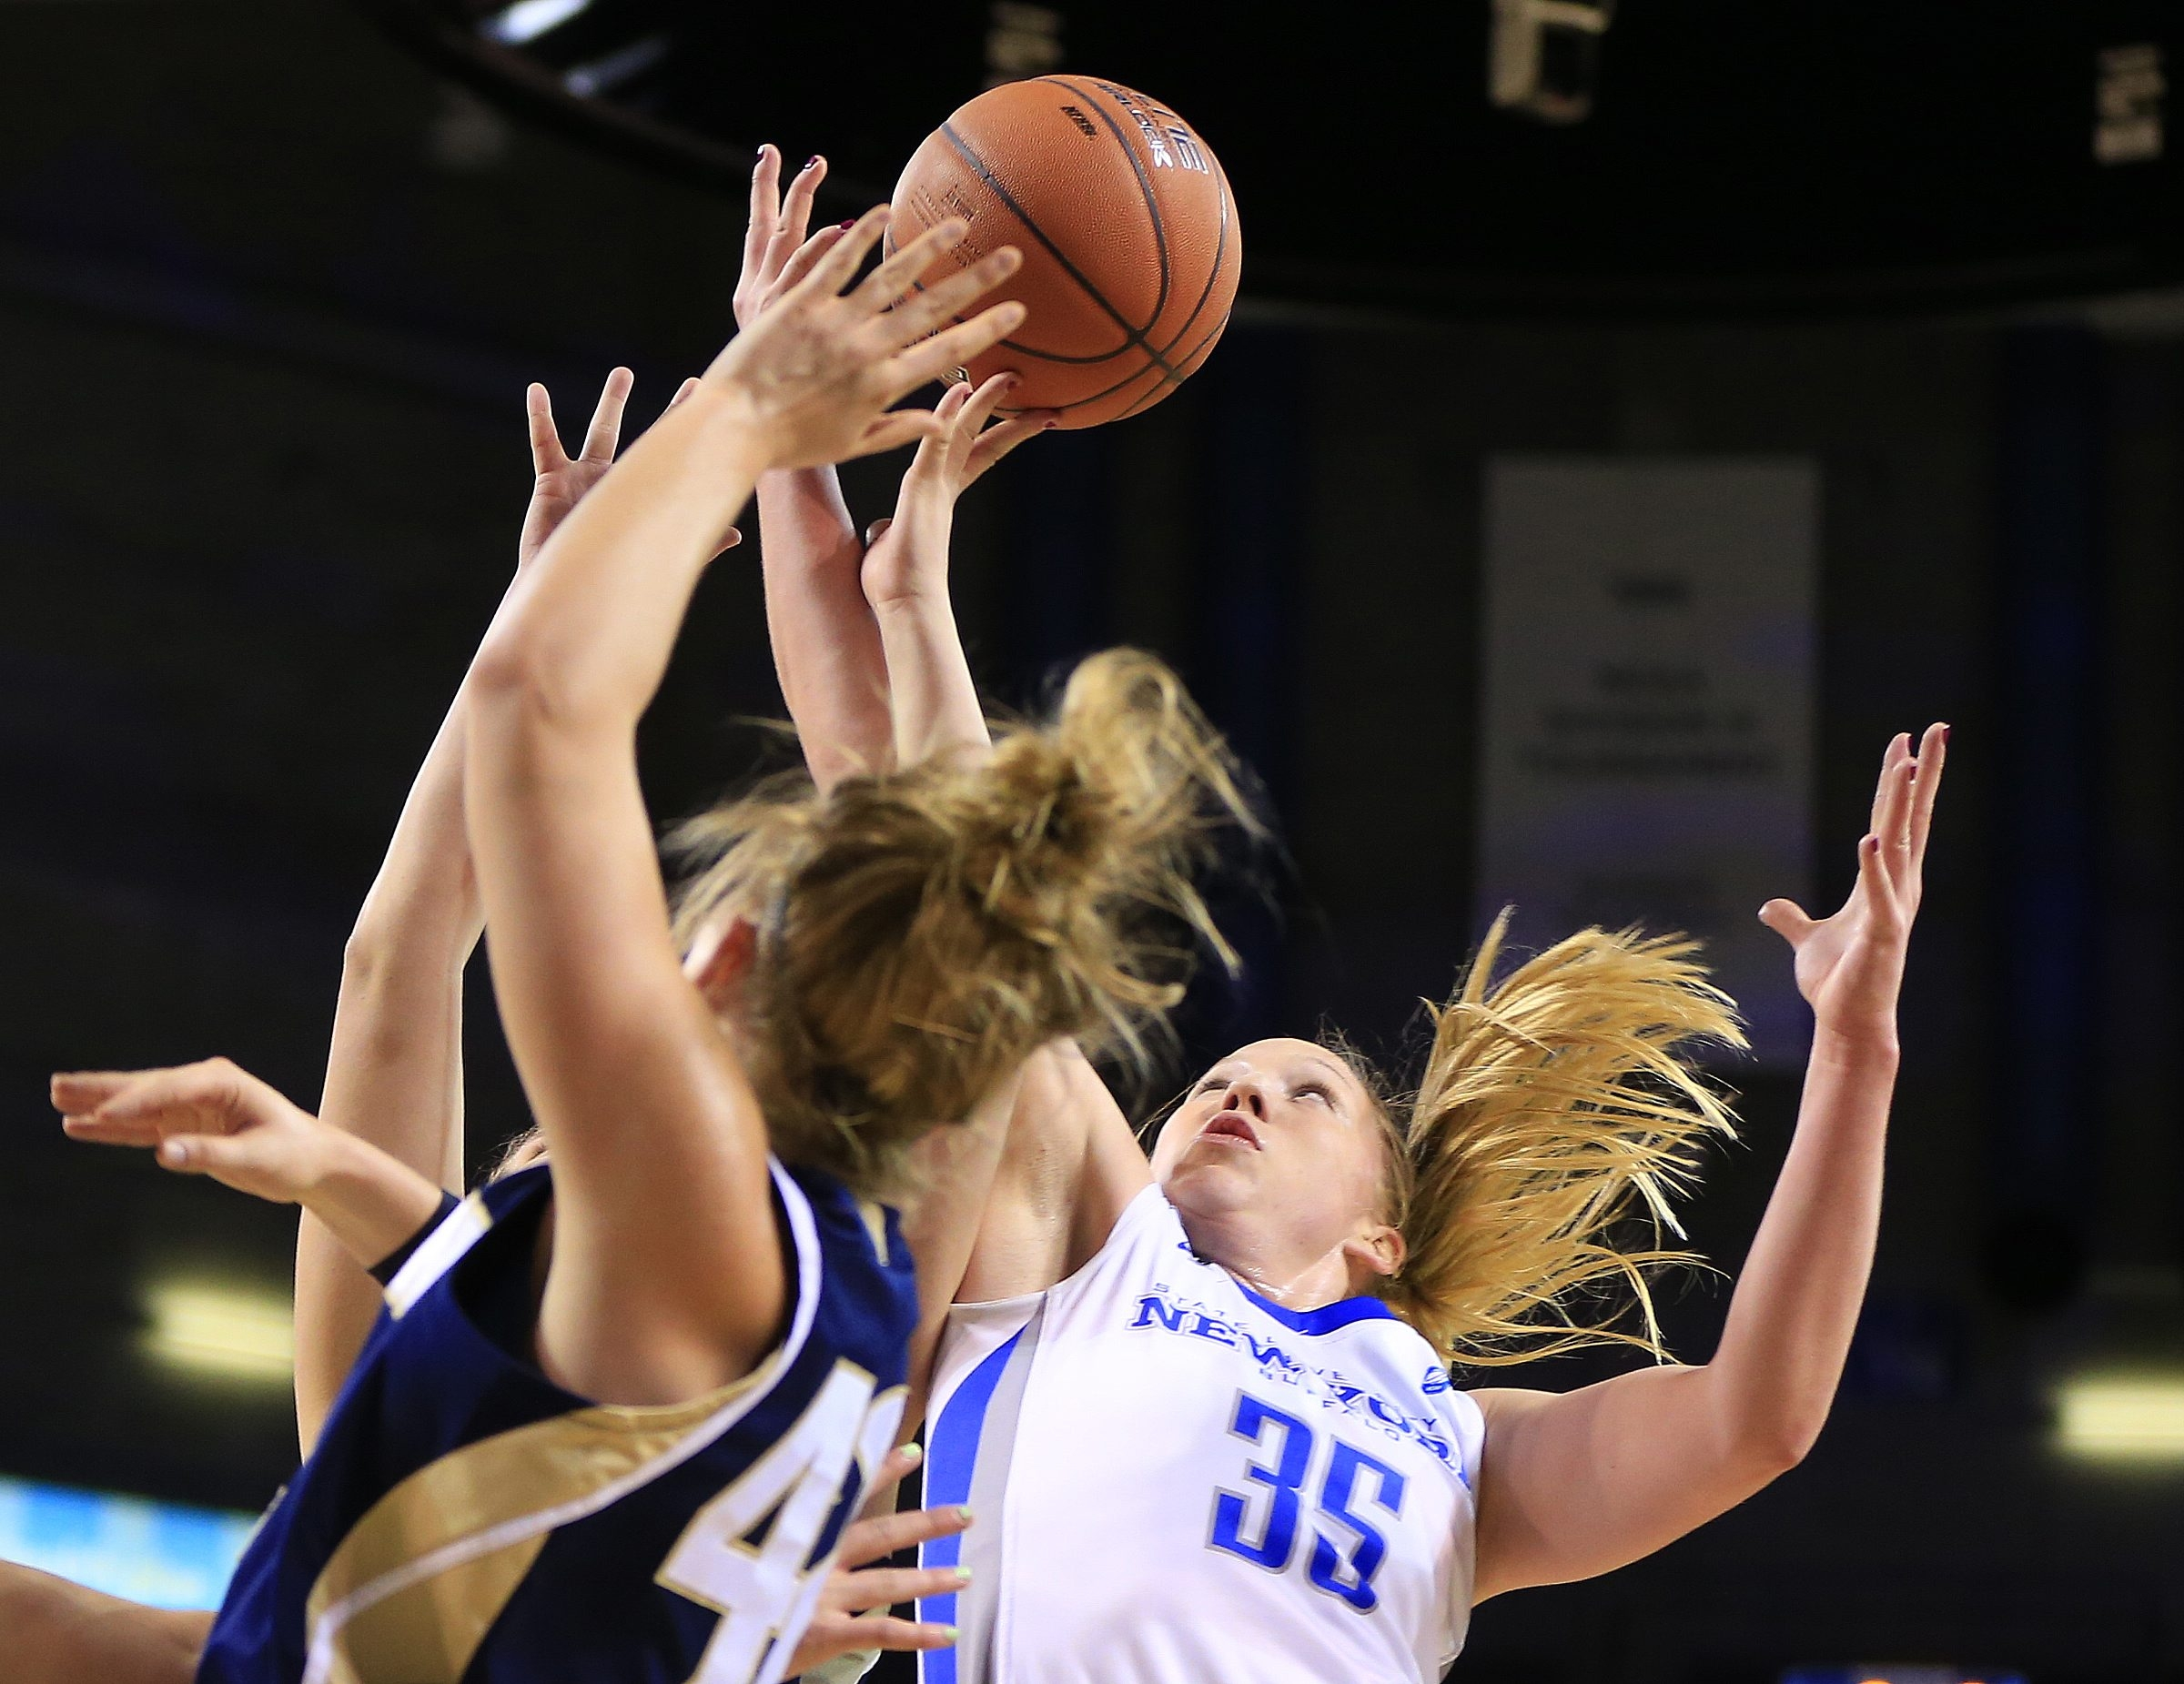 Mackenzie Loesing is averaging 13.7 points and 3.5 rebounds for Buffalo. She leads the team with 40 made three-pointers this season.